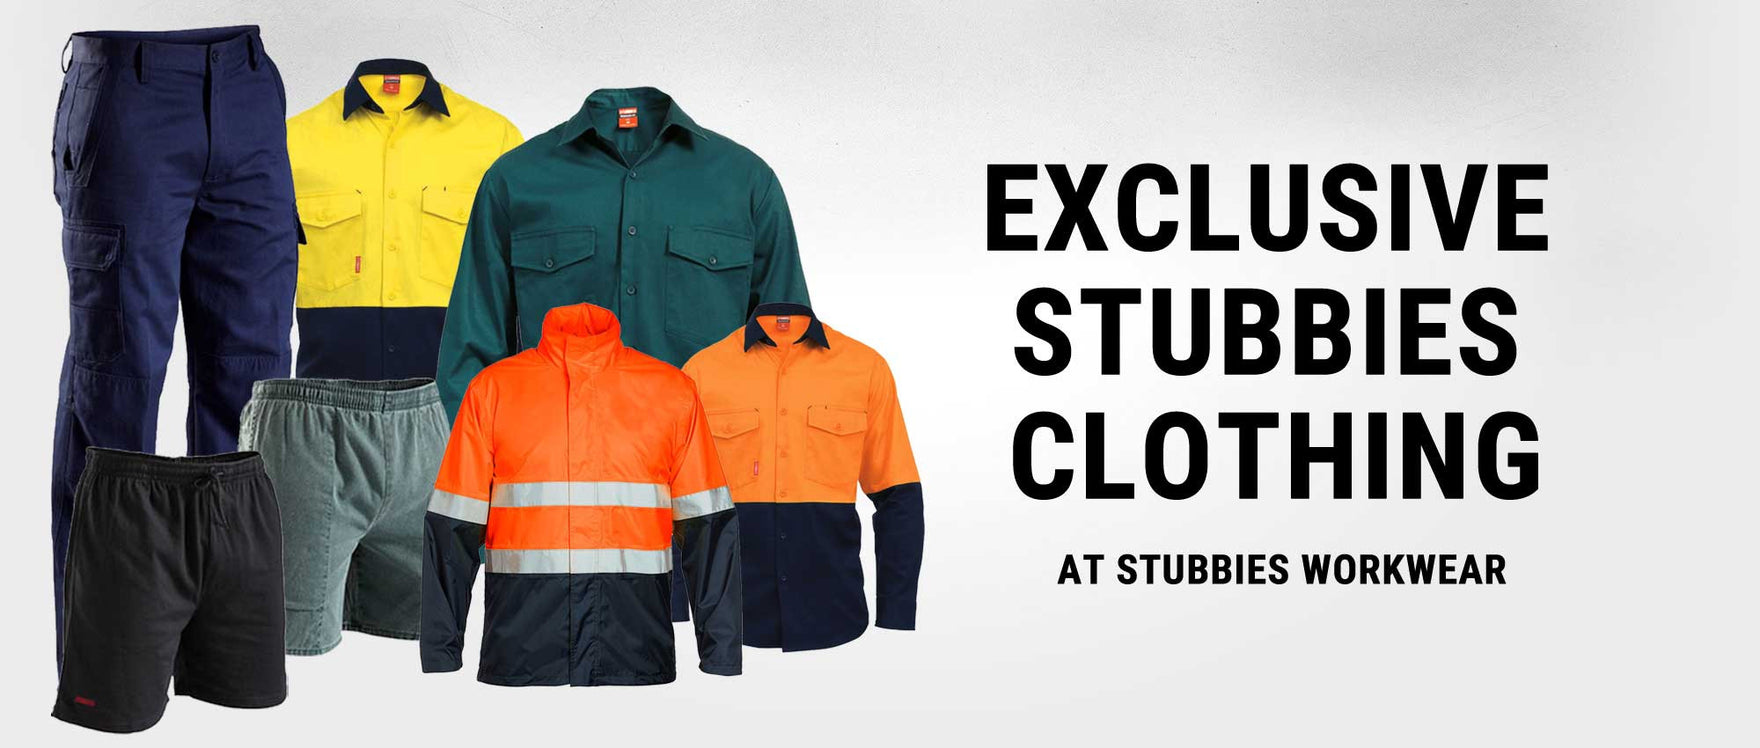 Exclusive Stubbies clothing at Stubbies Workwear